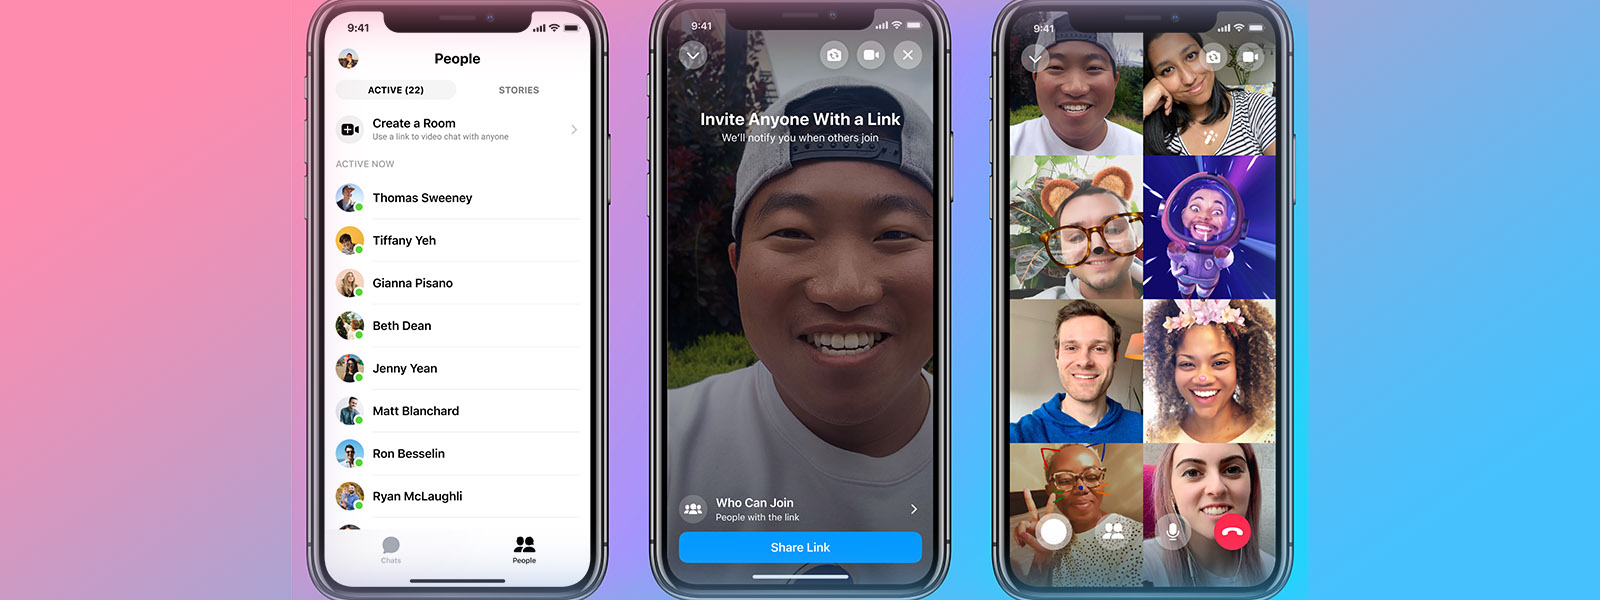 Facebook And Instagram Roll Out New Features That Bring People Closer Together